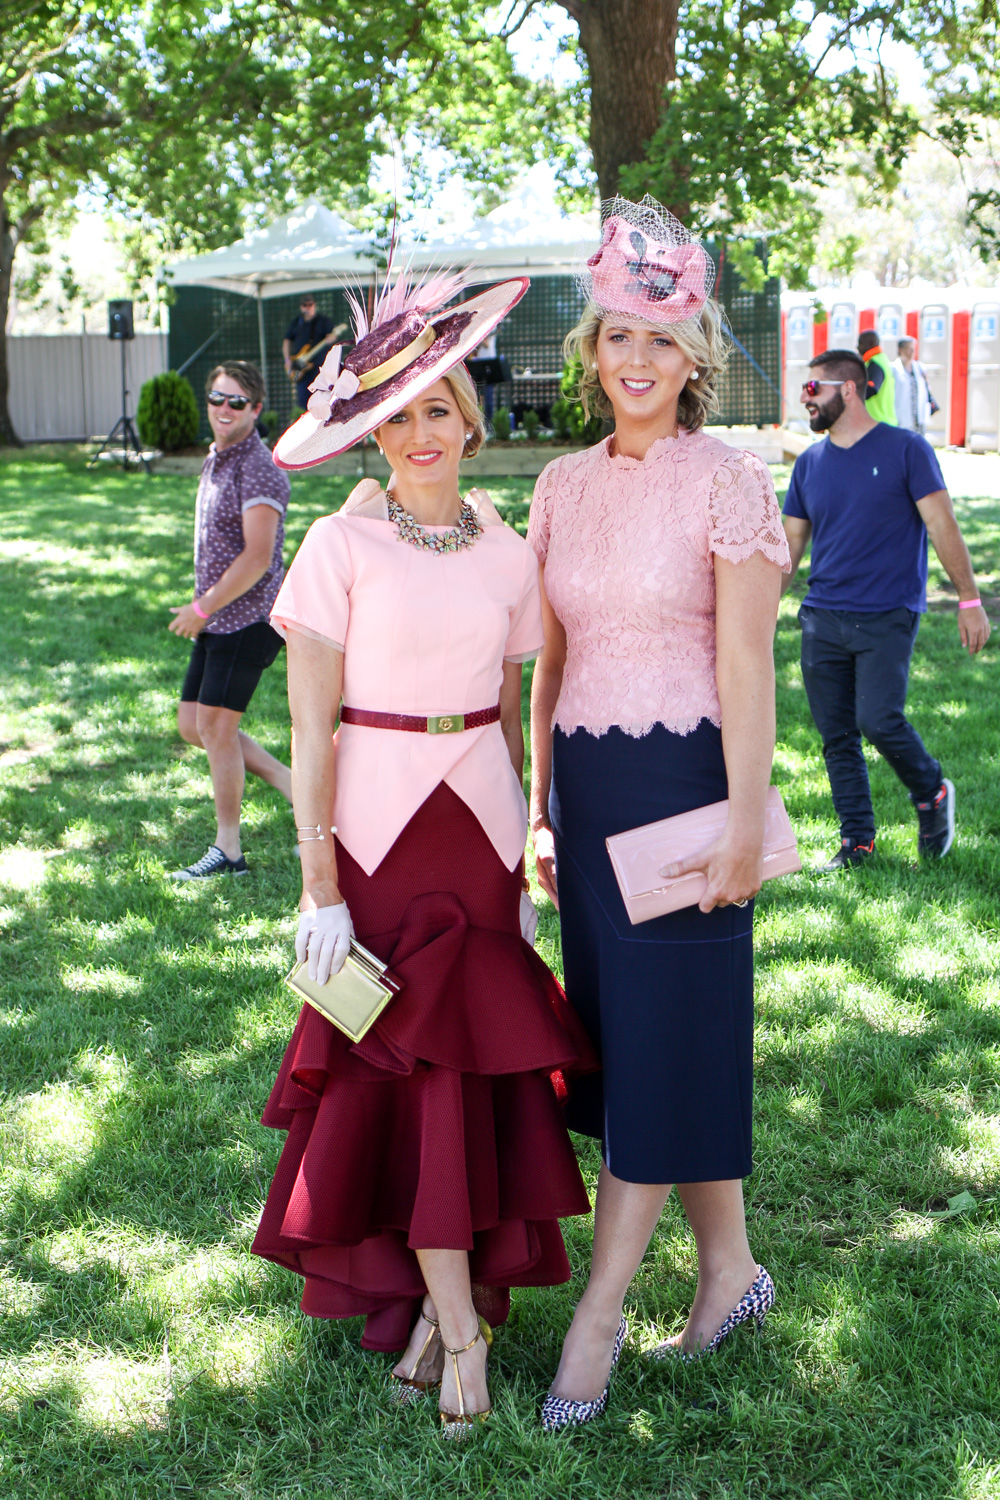 Millinery designer Carle with friend Chrissy at Ballarat Cup 2016